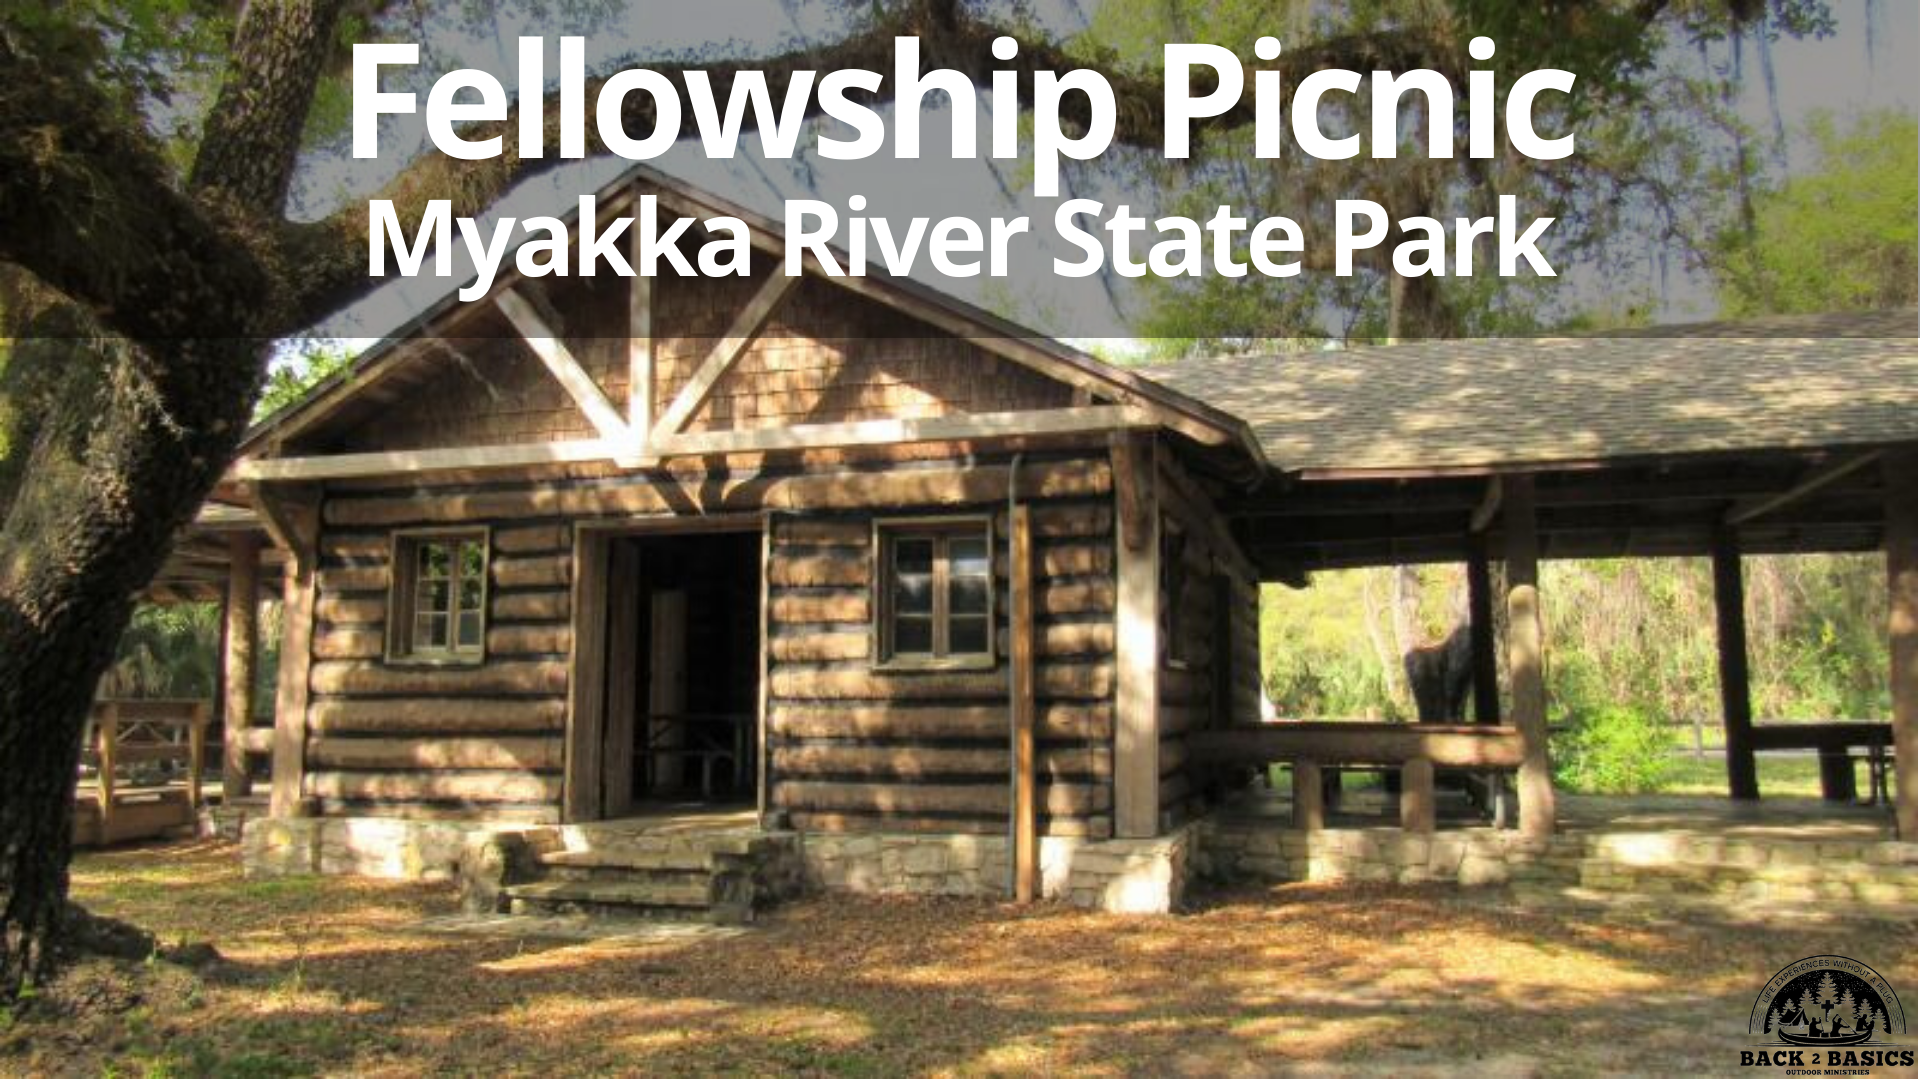 fellowship picnic, myakka river state park picnic, back2basics outdoor ministries